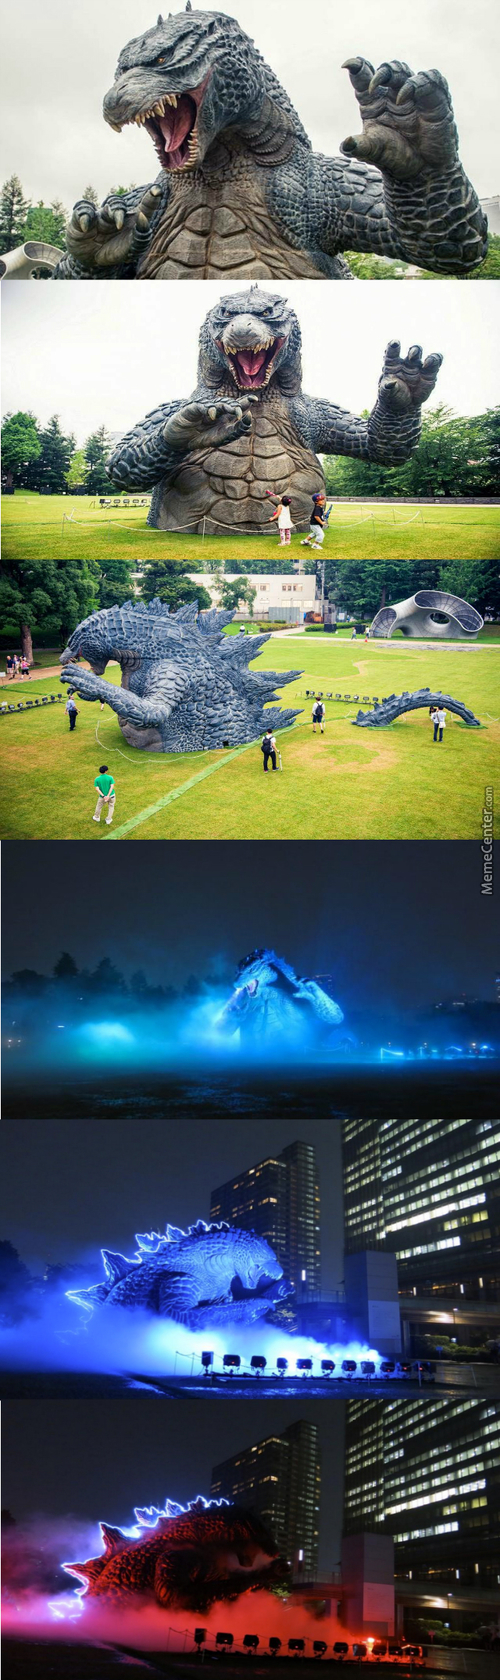 An Awesome Godzilla Statue In Tokyo Midtown Park For Godzilla 60Th Anniversary